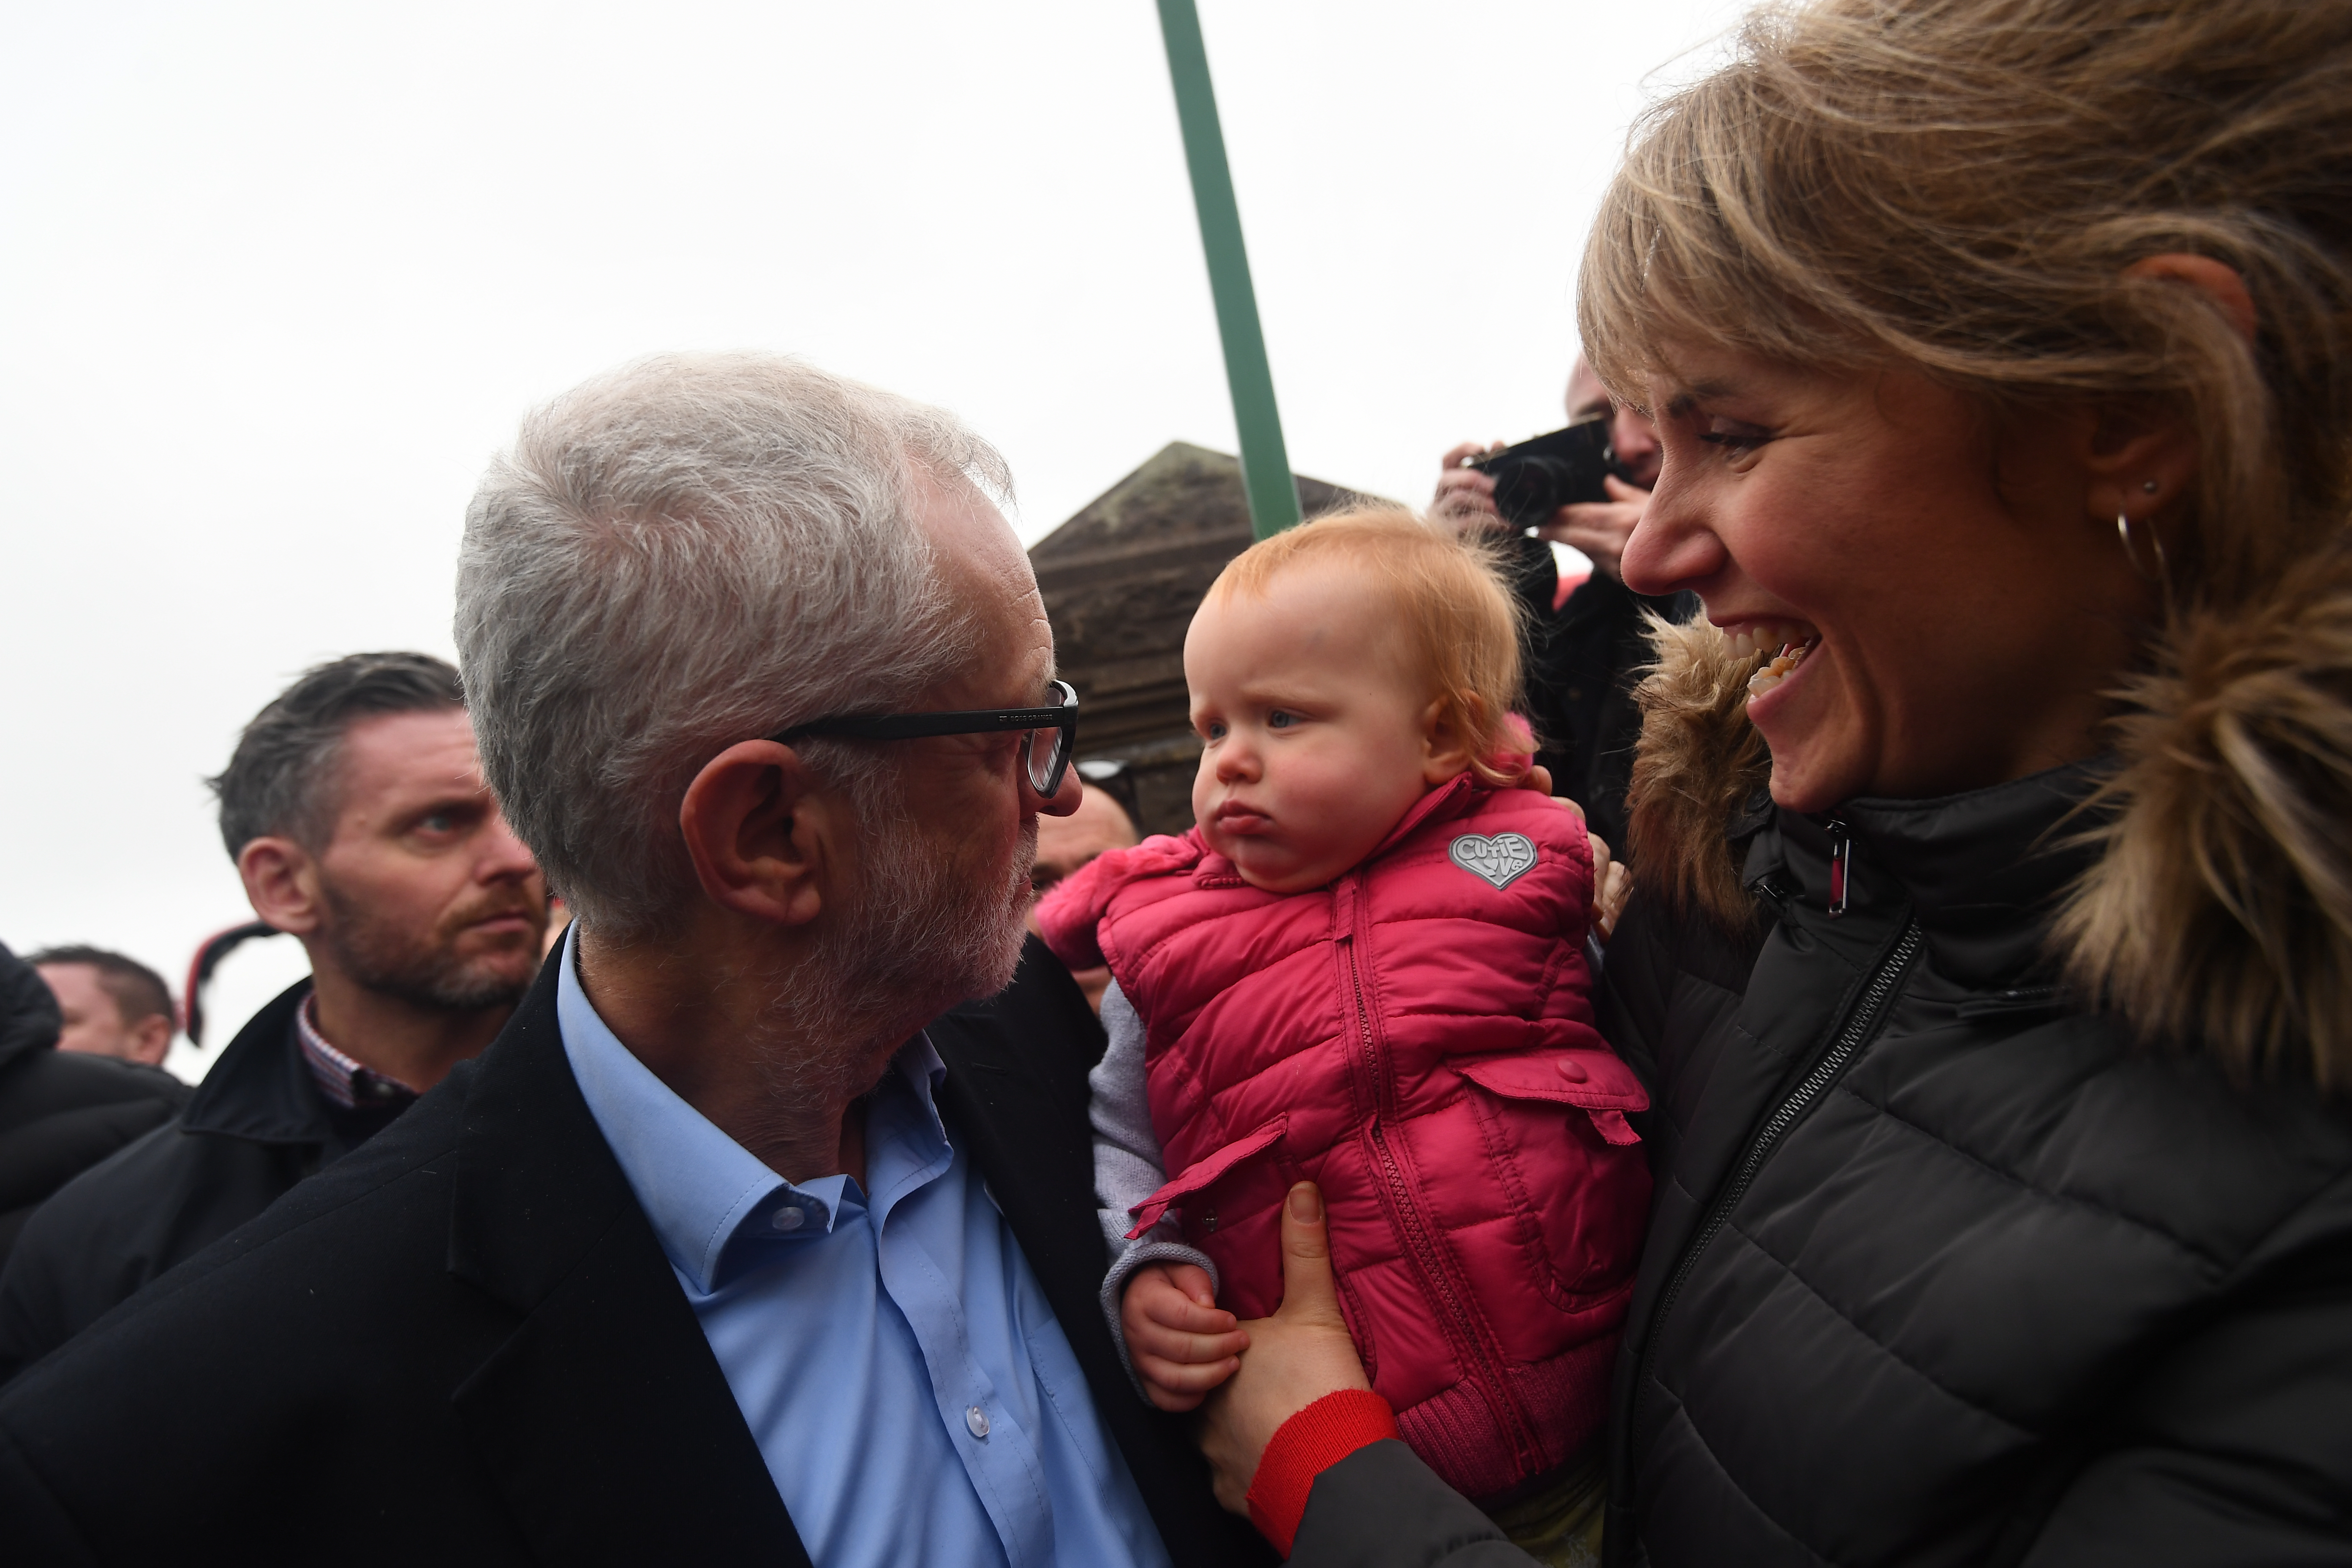 Labour Party leader Jeremy Corbyn looks at a baby during a visit to Swansea, while on the General Election campaign trail in Wales.